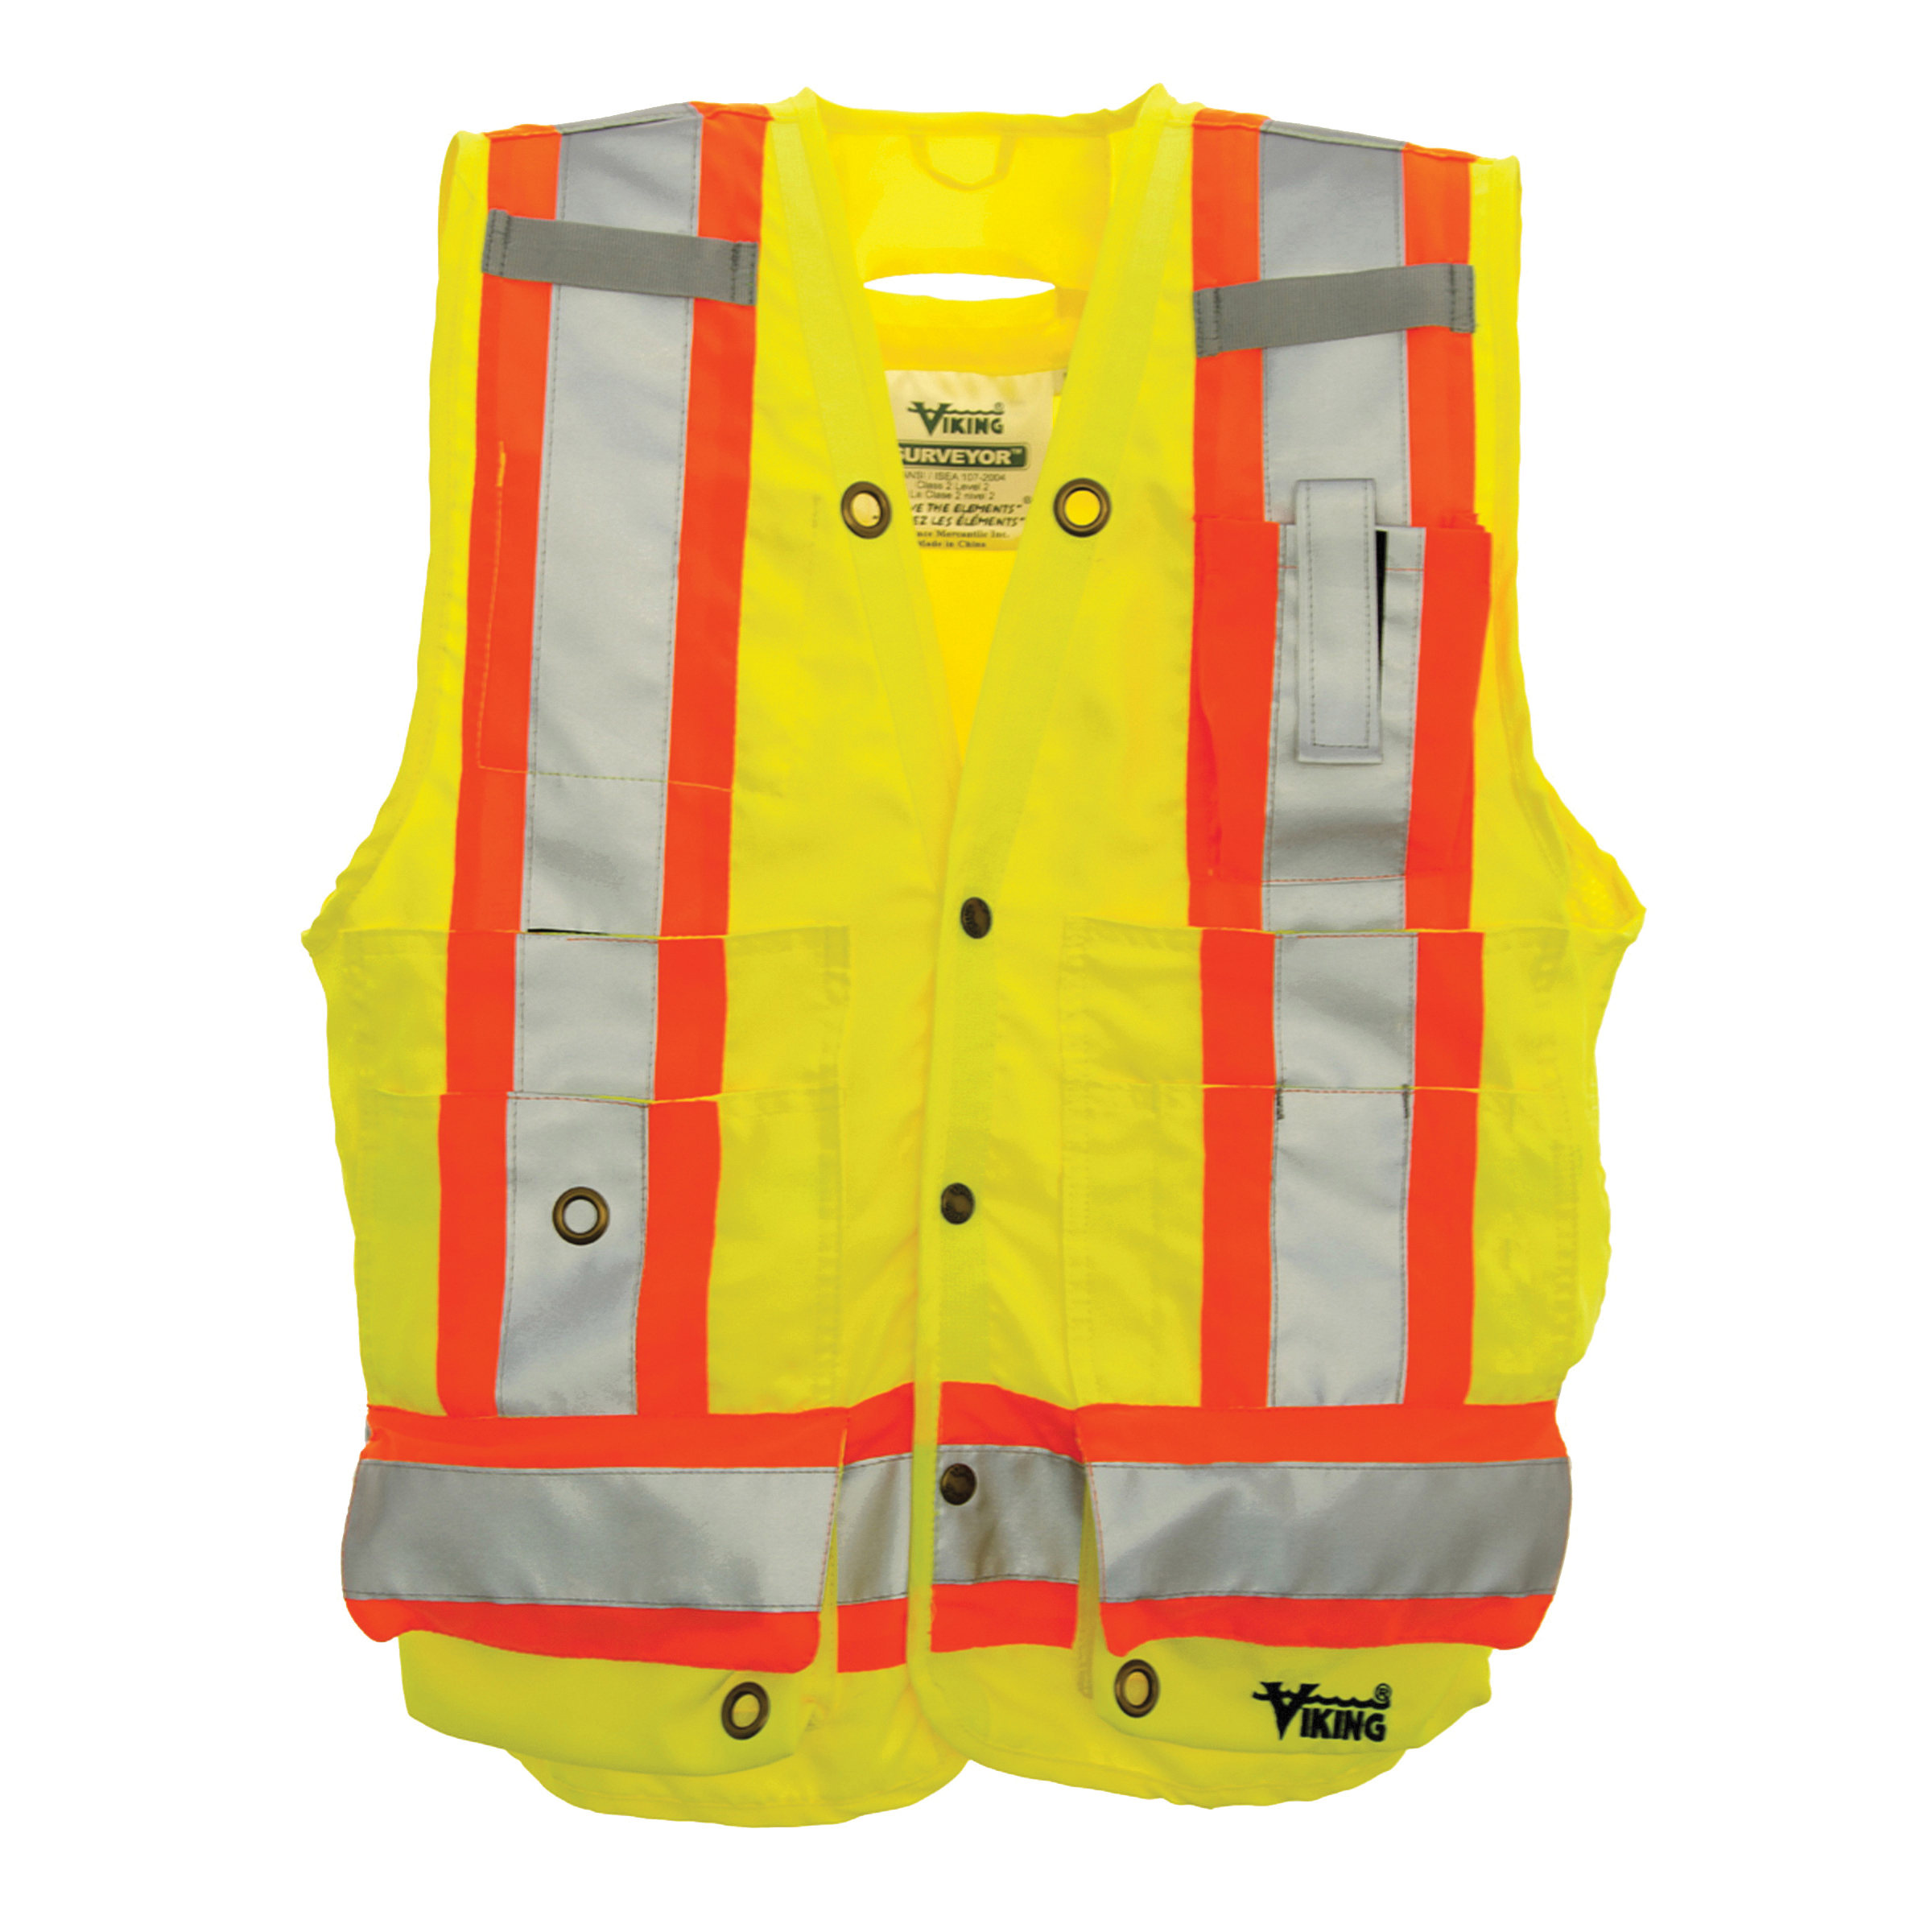 Viking® 6195G-M High Visibility Surveyor Safety Vest, M, Green, Polyester, Snap Closure, 13 Pockets, ANSI Class: 2, ANSI/ISEA 107-2015 Type R Class 2 (Not FR)